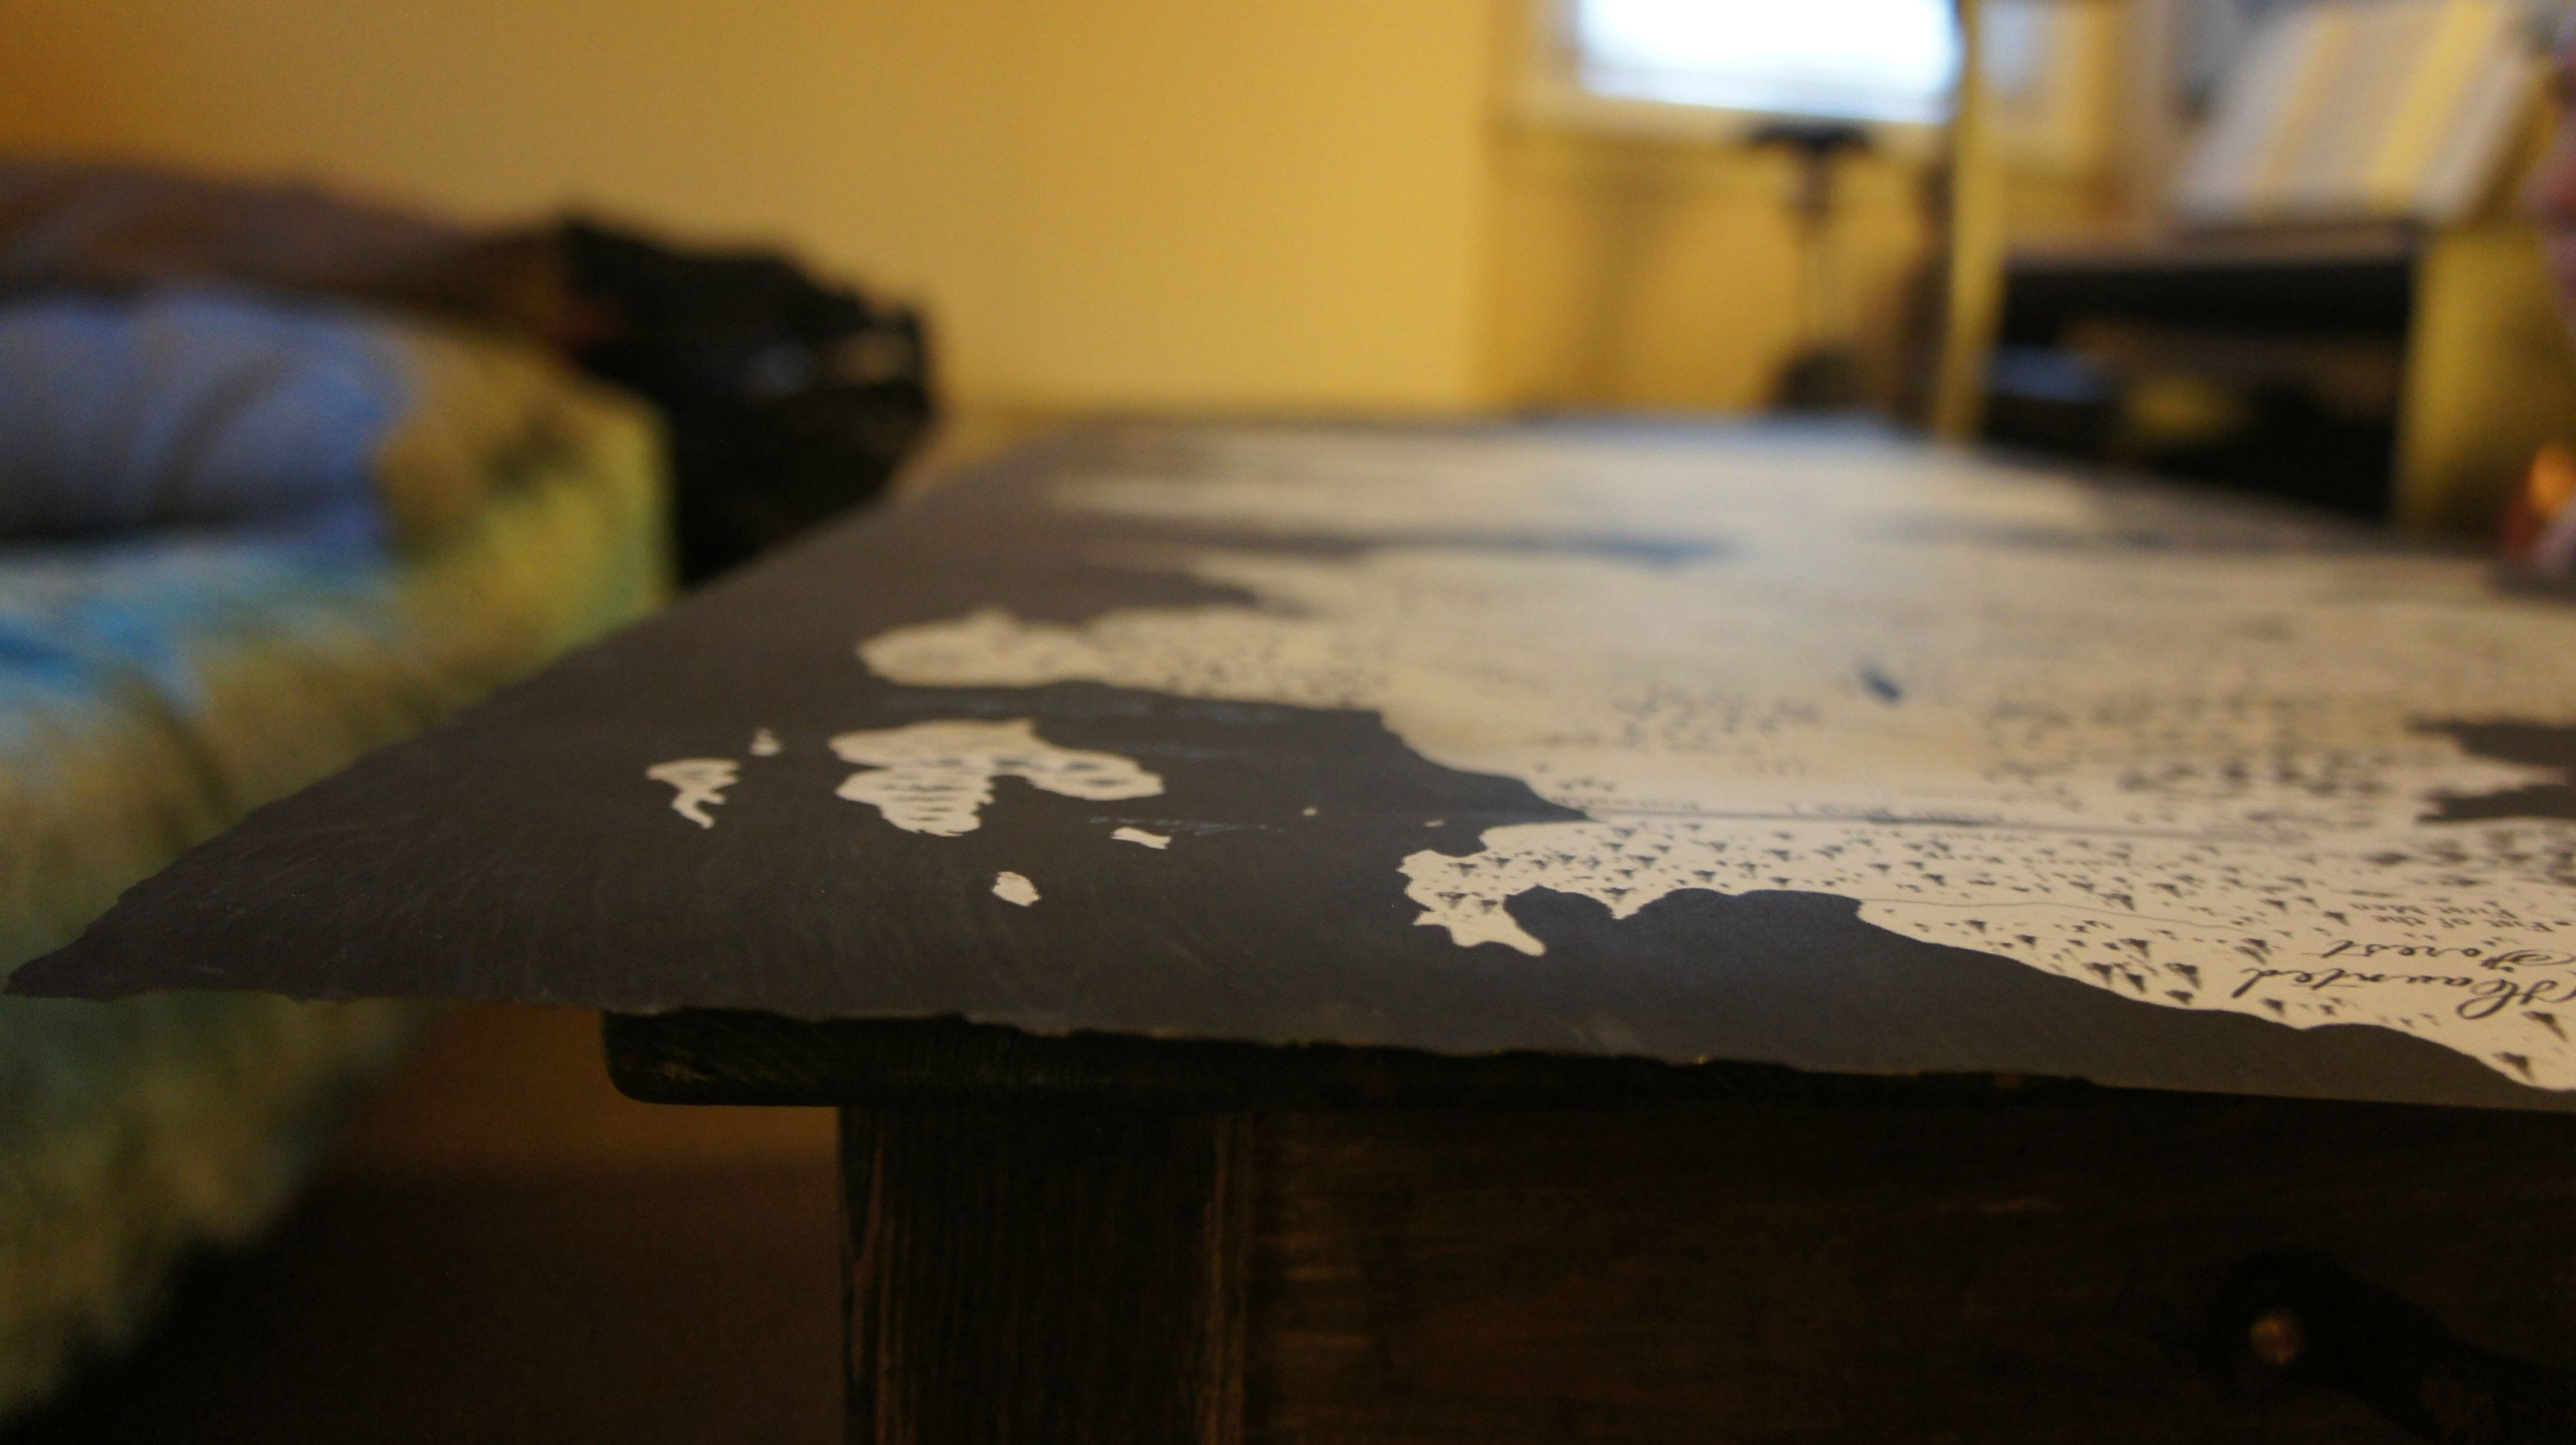 Game Of Thrones Fans Turn Westeros Map Into Incredible Coffee Table The Daily Dot